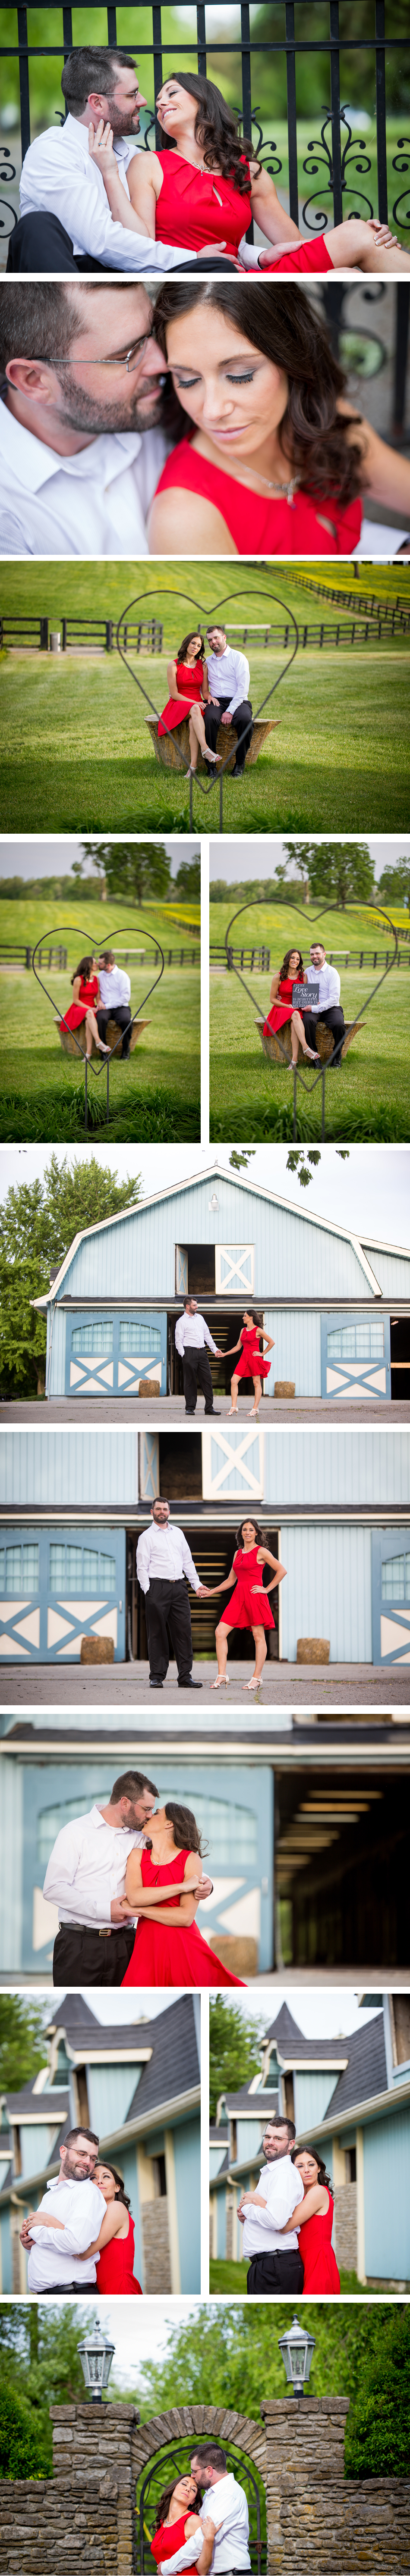 Walnut Way Farm Wedding eMotion image